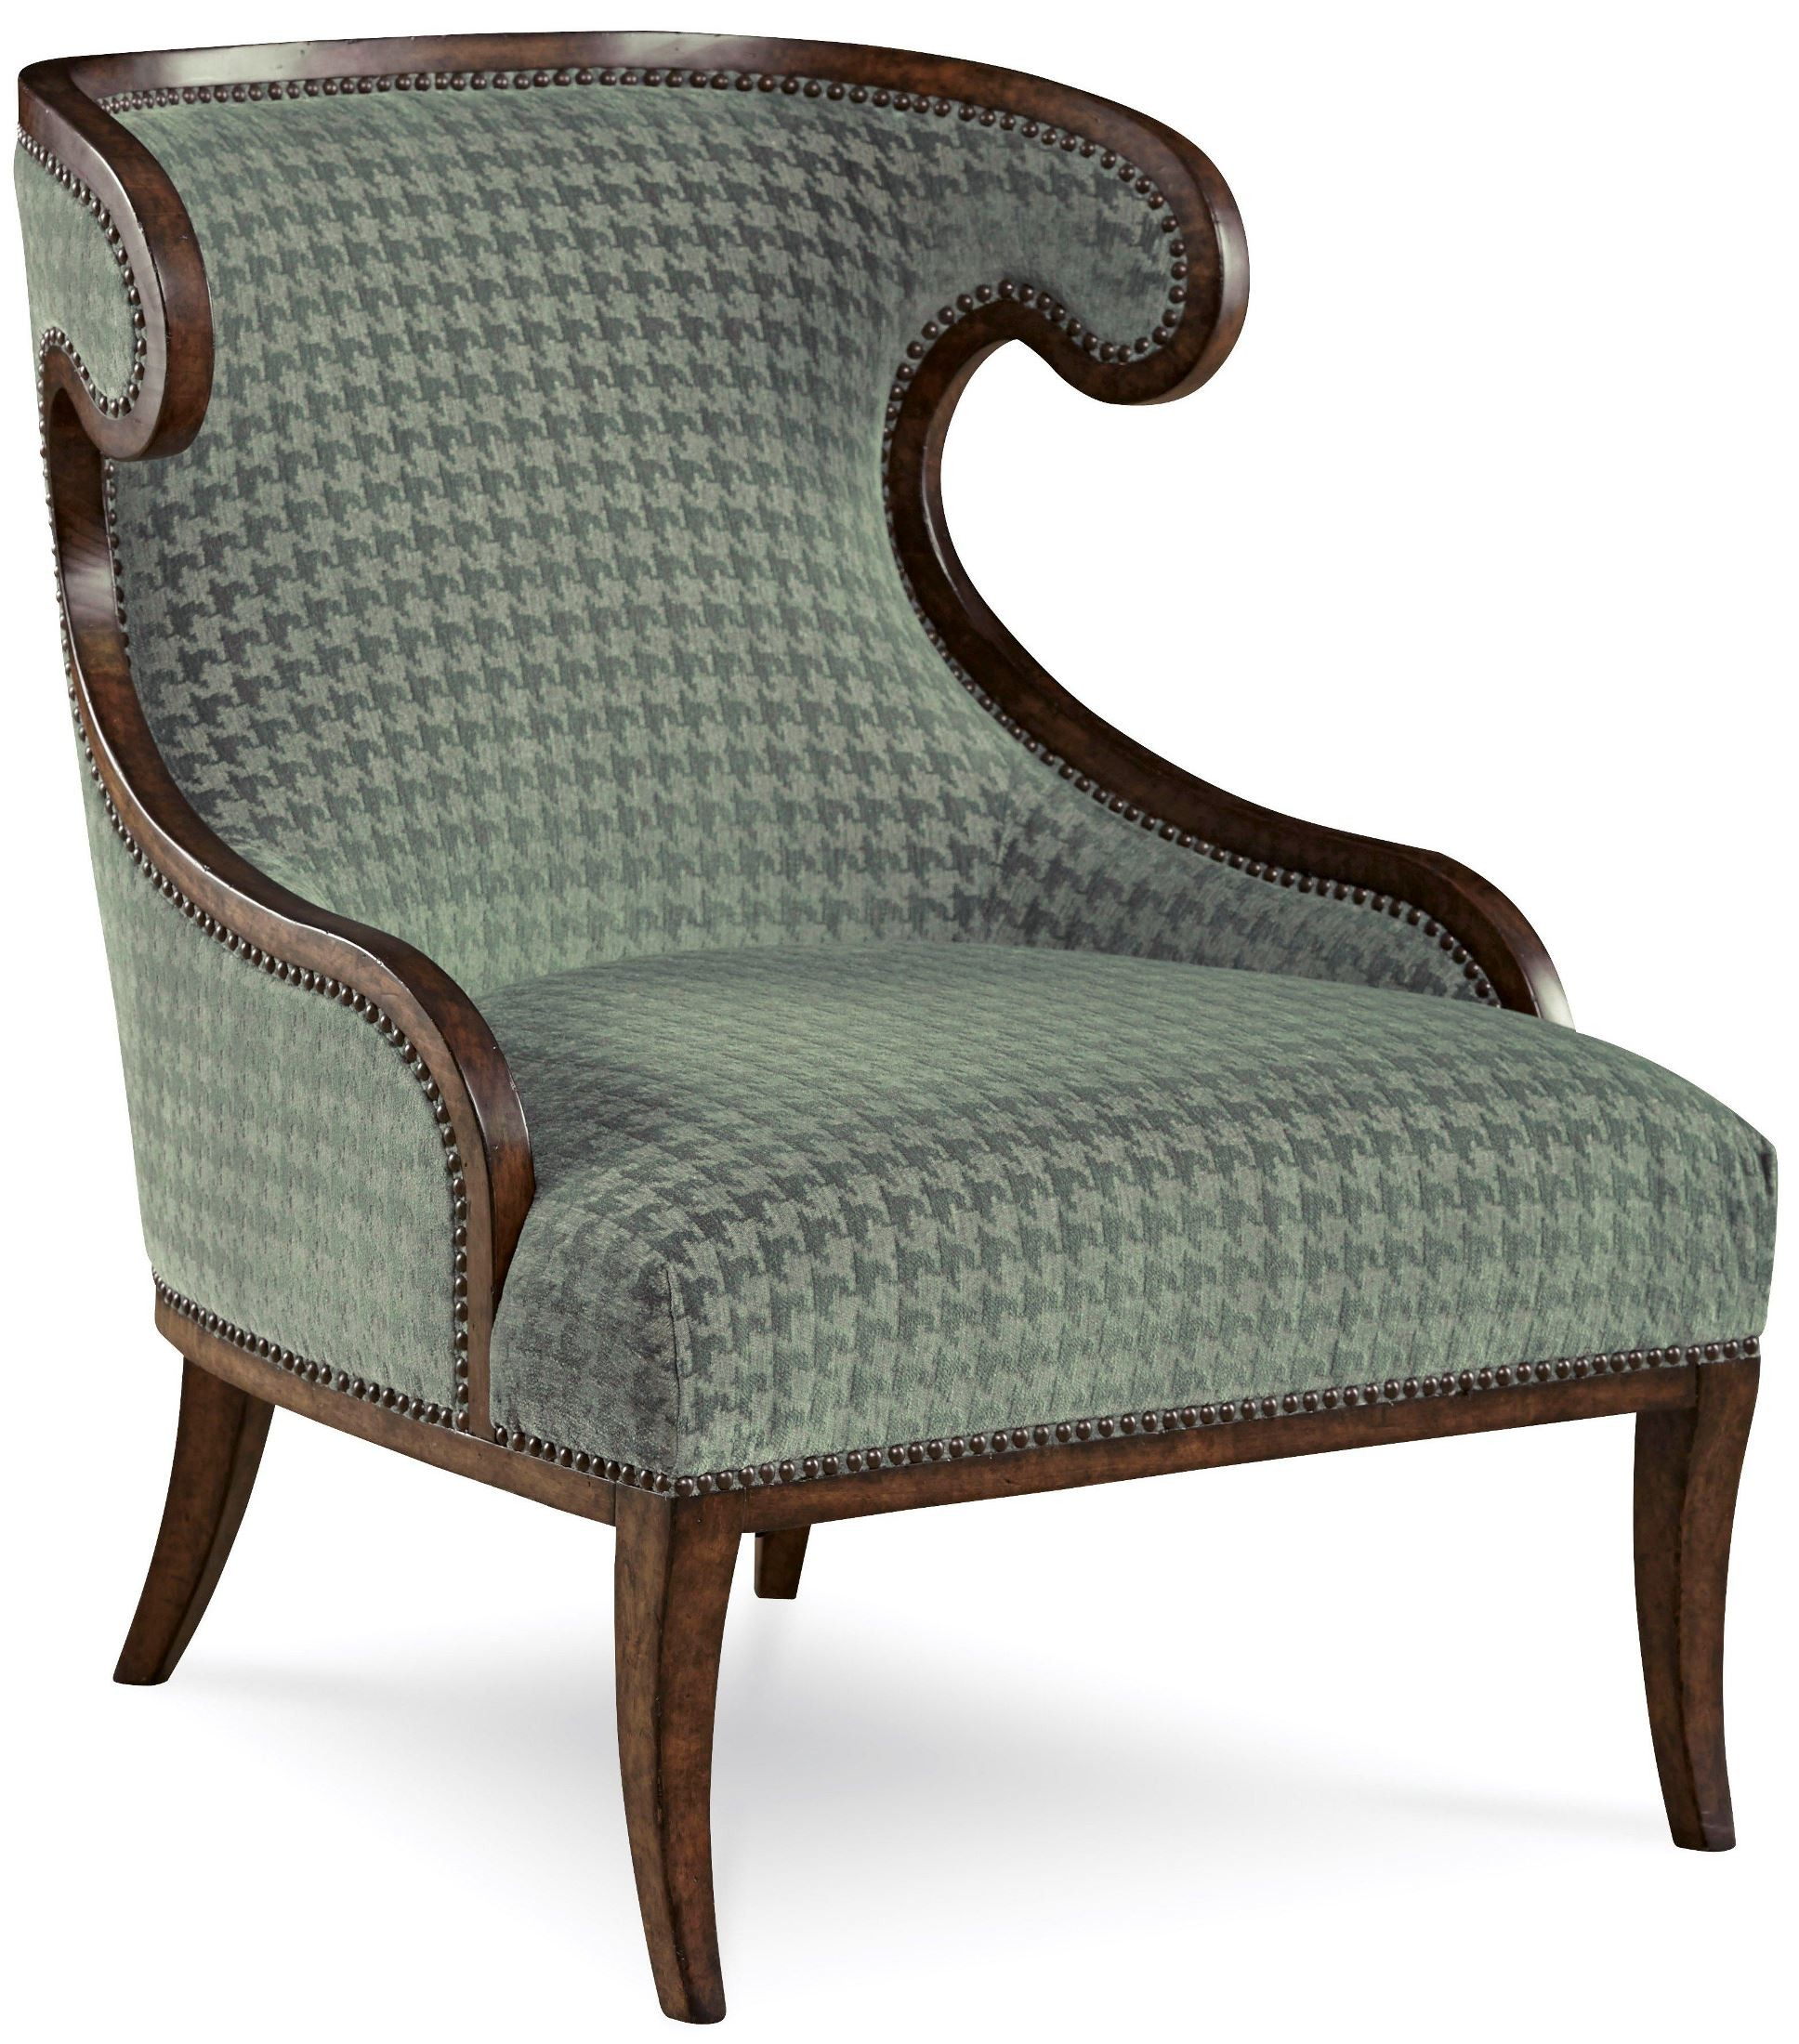 Palazzo misty teal upholstered accent chair from art